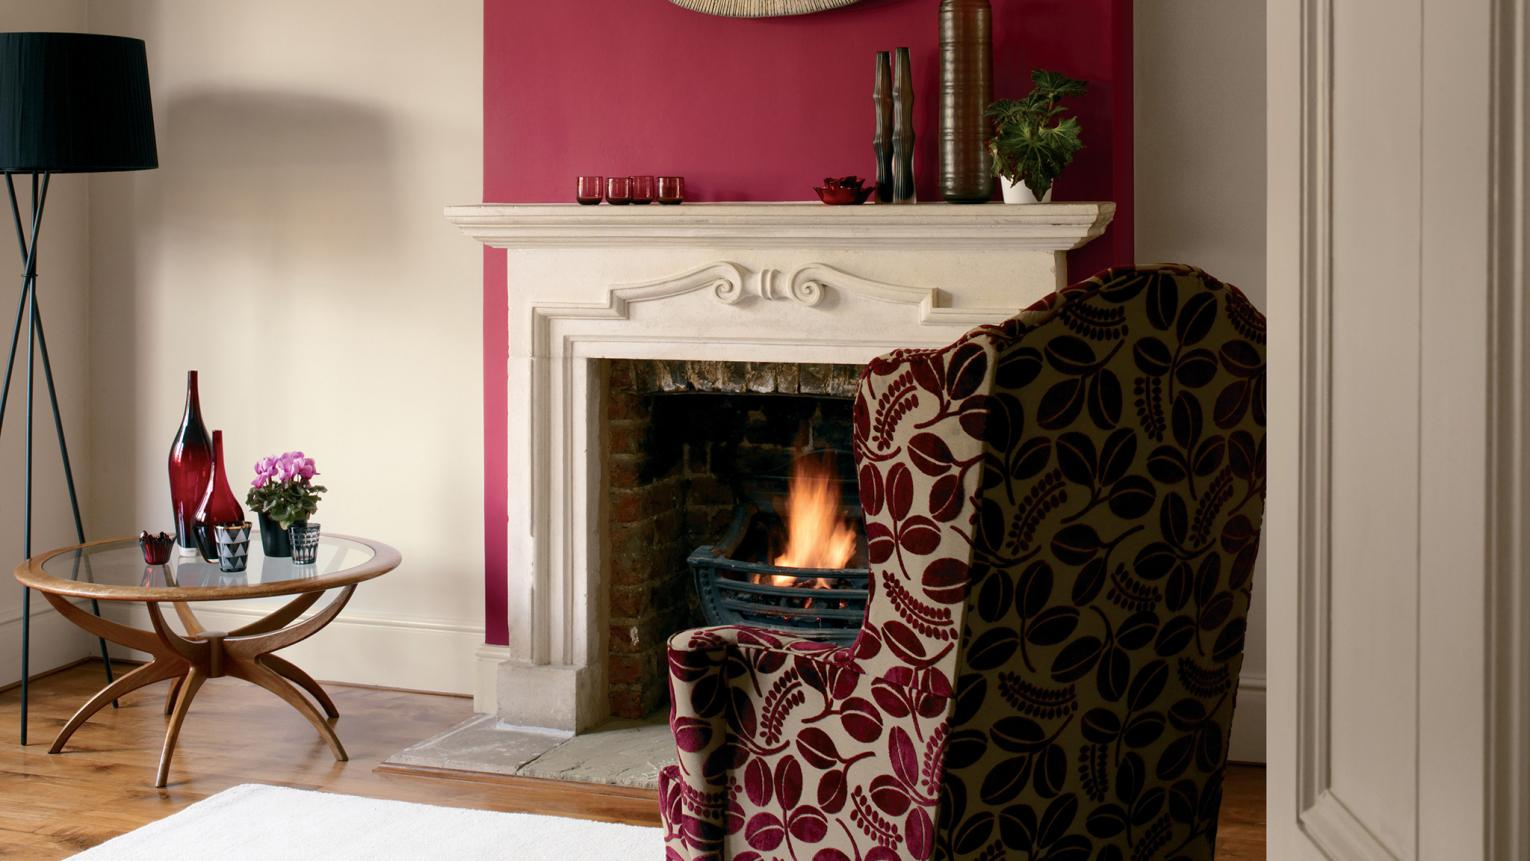 Make an interior design statement in the living room with a striking feature panel painted in garnet red.